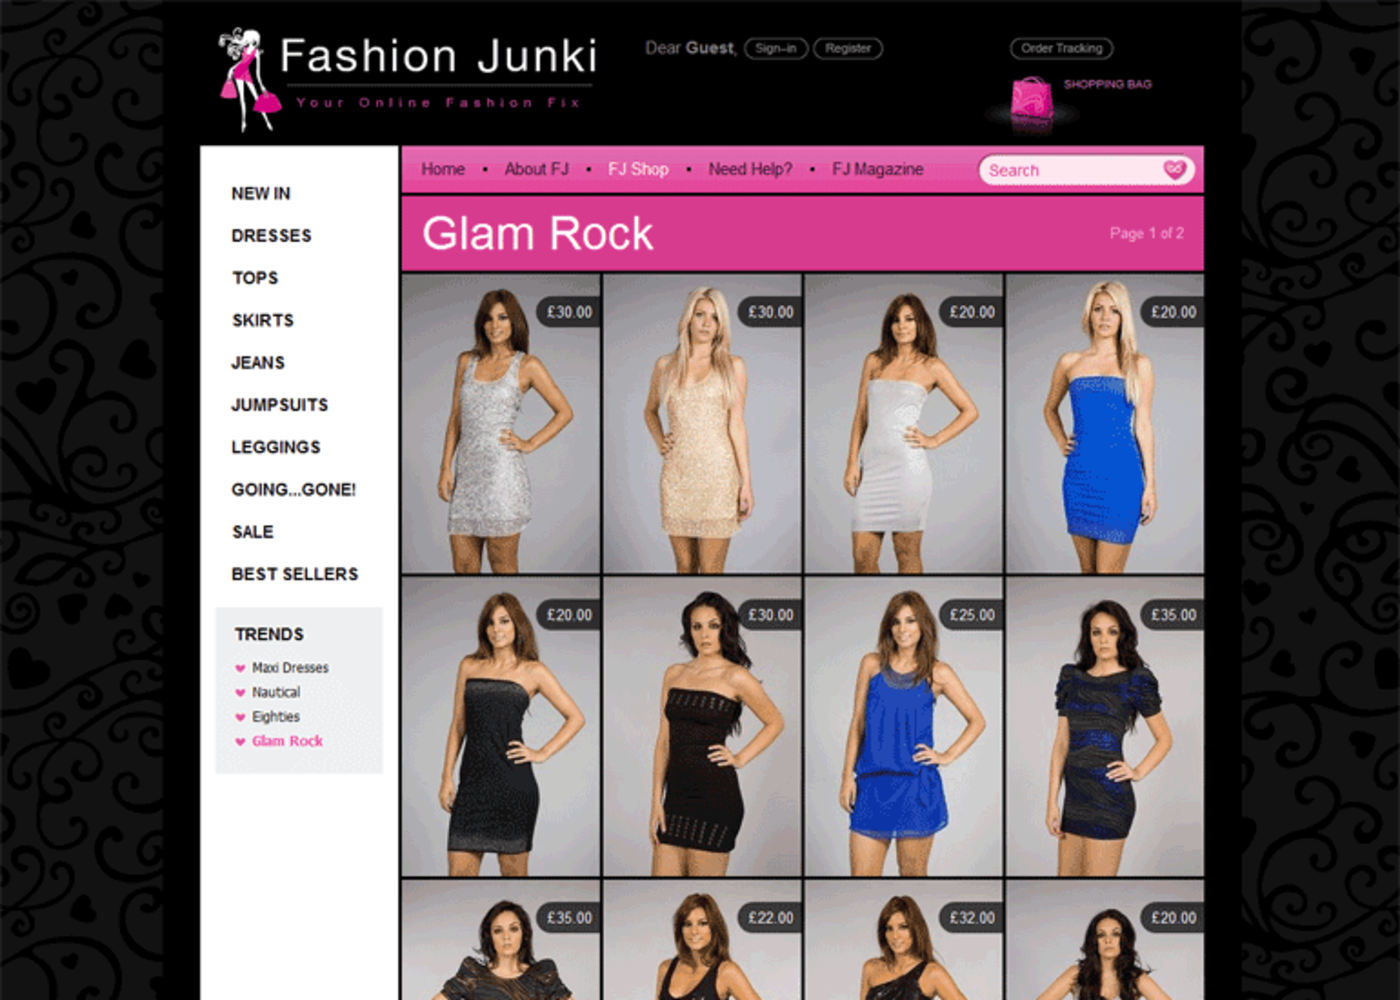 Fashion Junki Trends Glam Rock